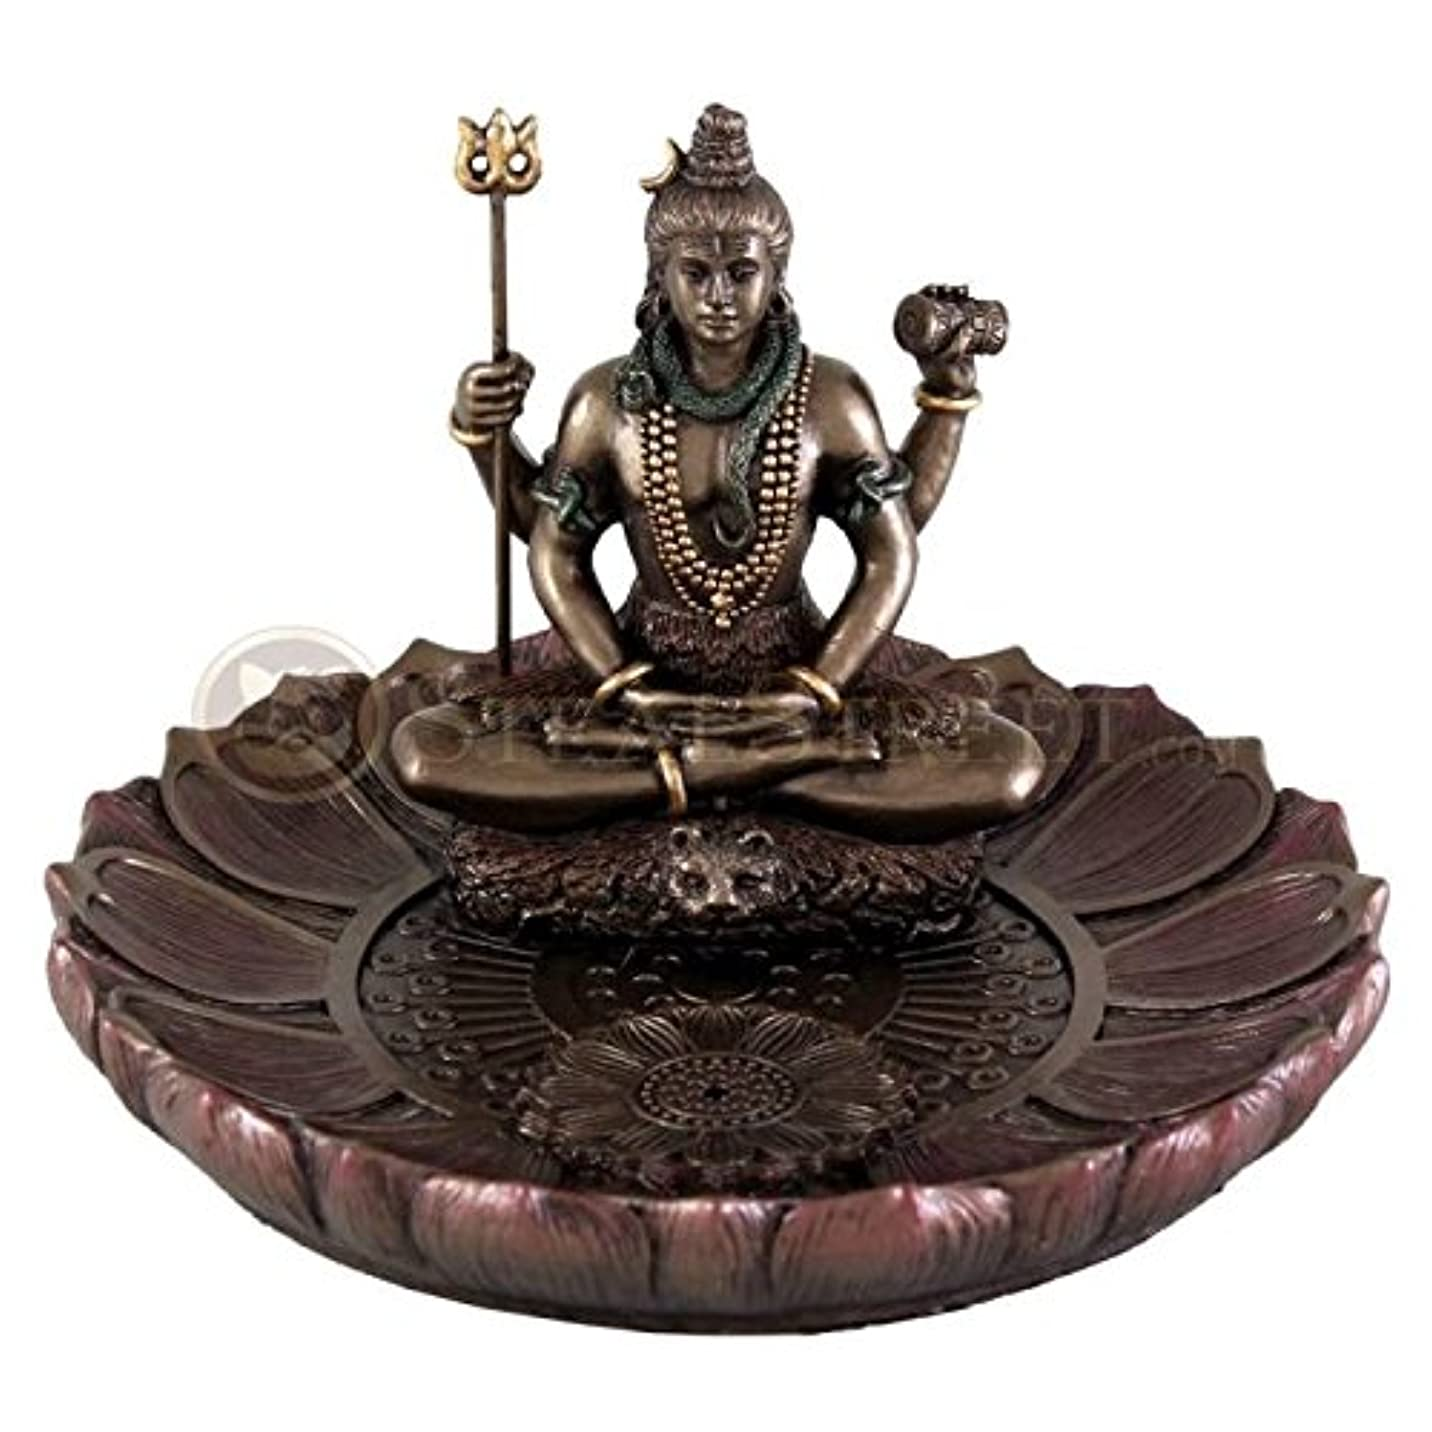 受け入れる悪いエジプトHindu God Shiva in Meditation Round Incense Holder Plate Incense Burner by Top Collection